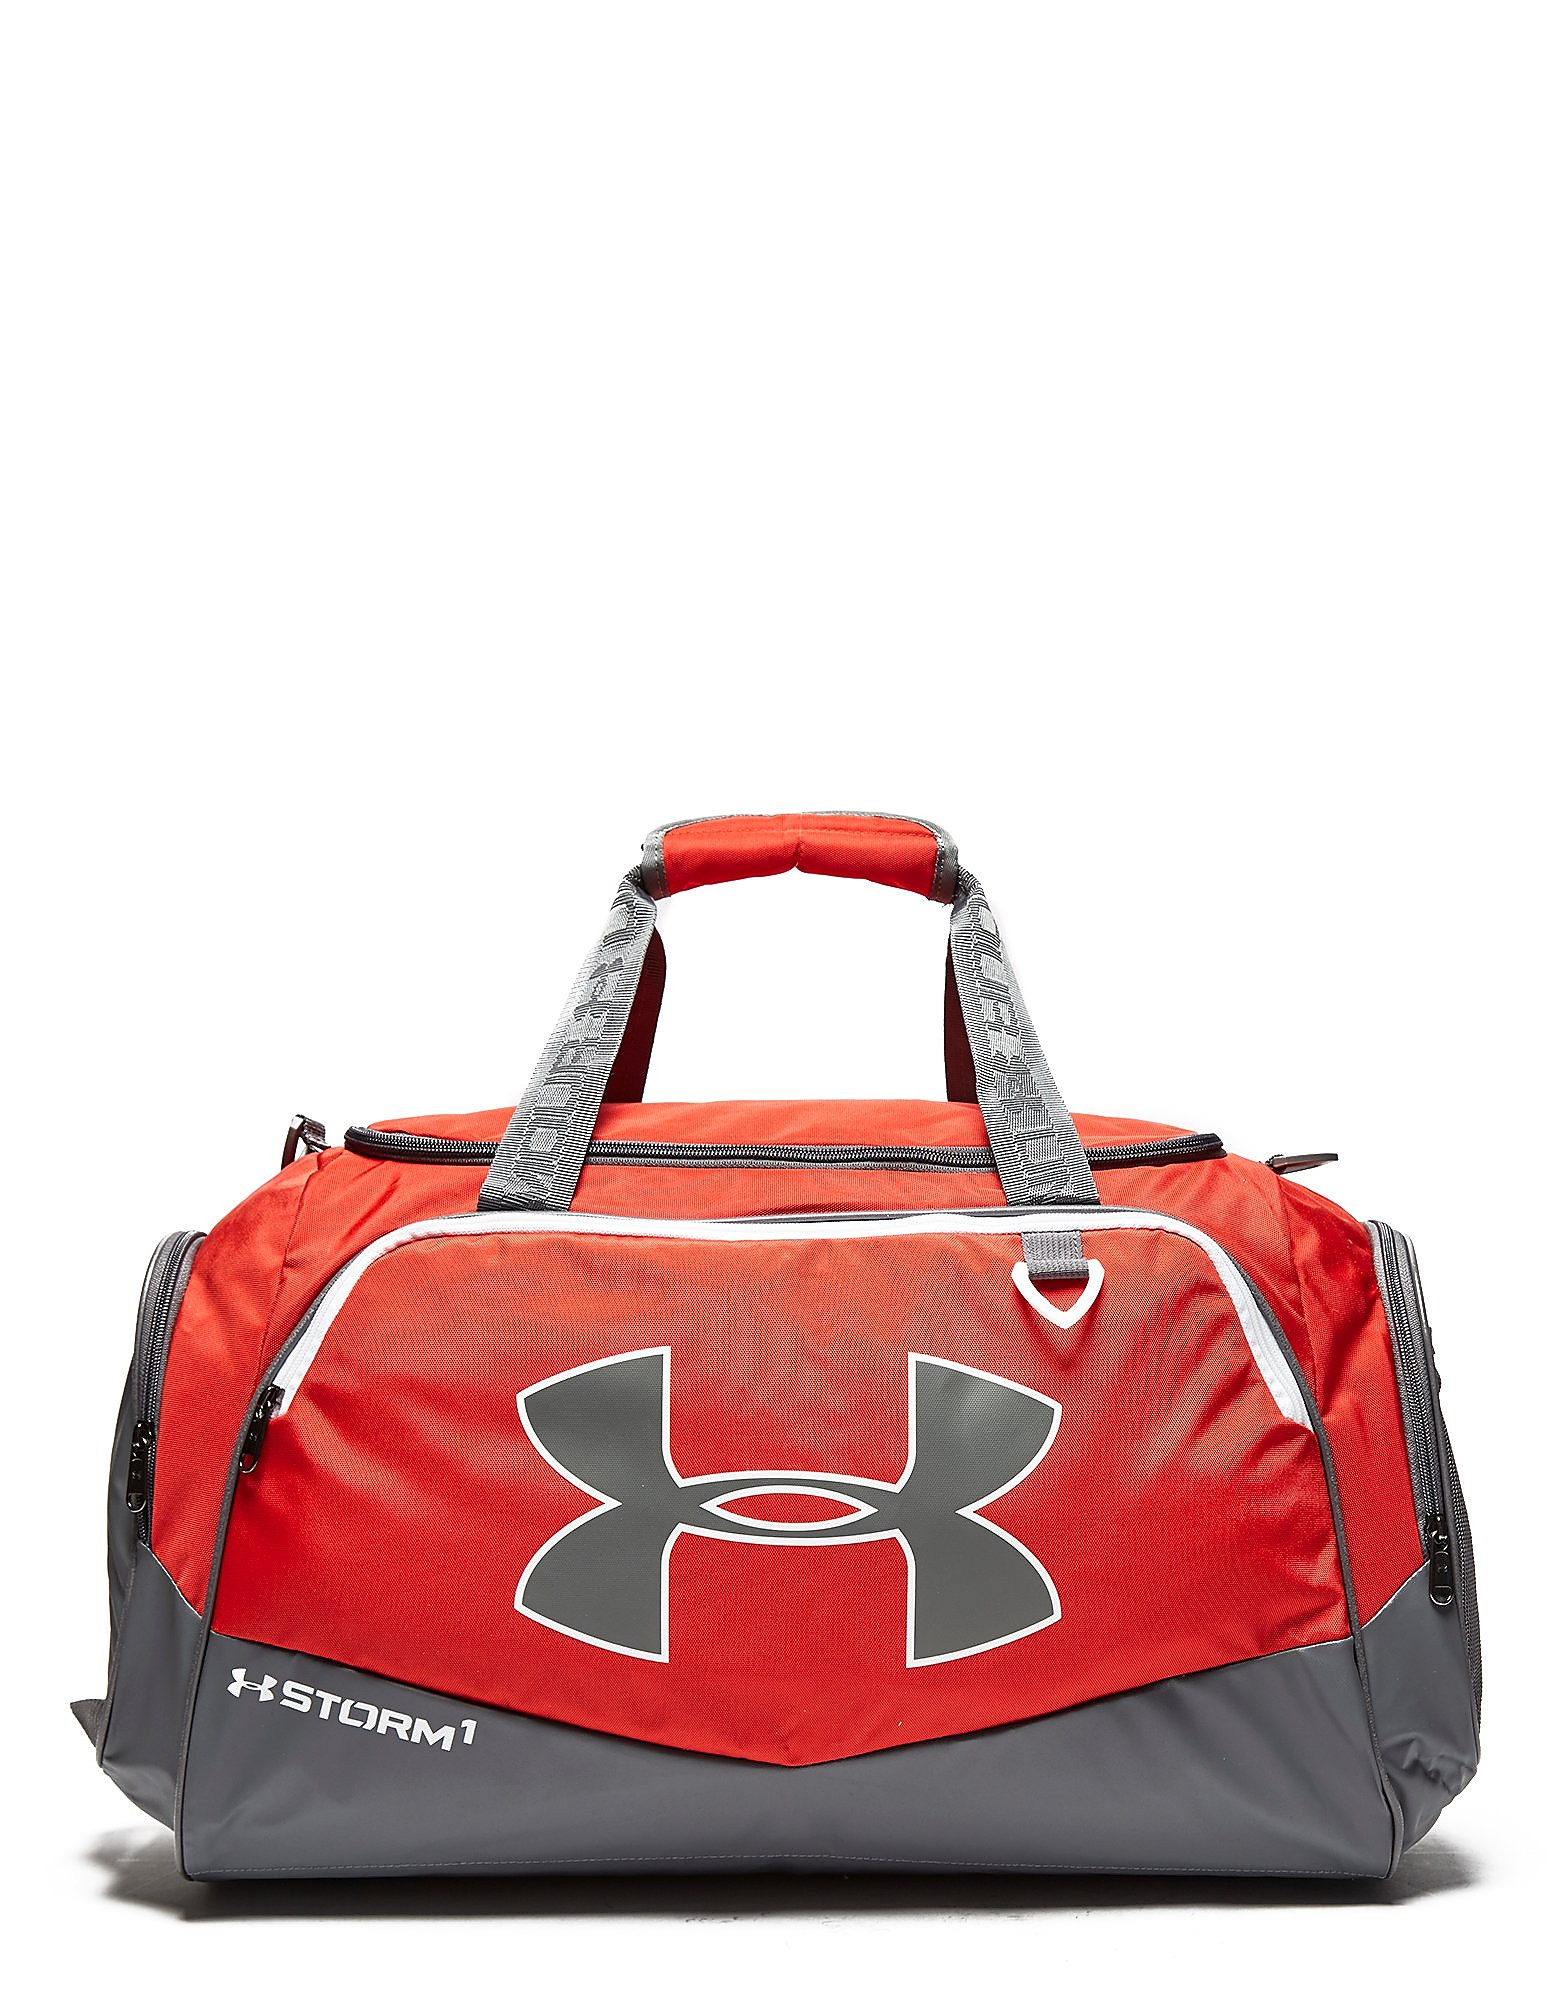 Under Armour Storm Undeniable Duffel Bag